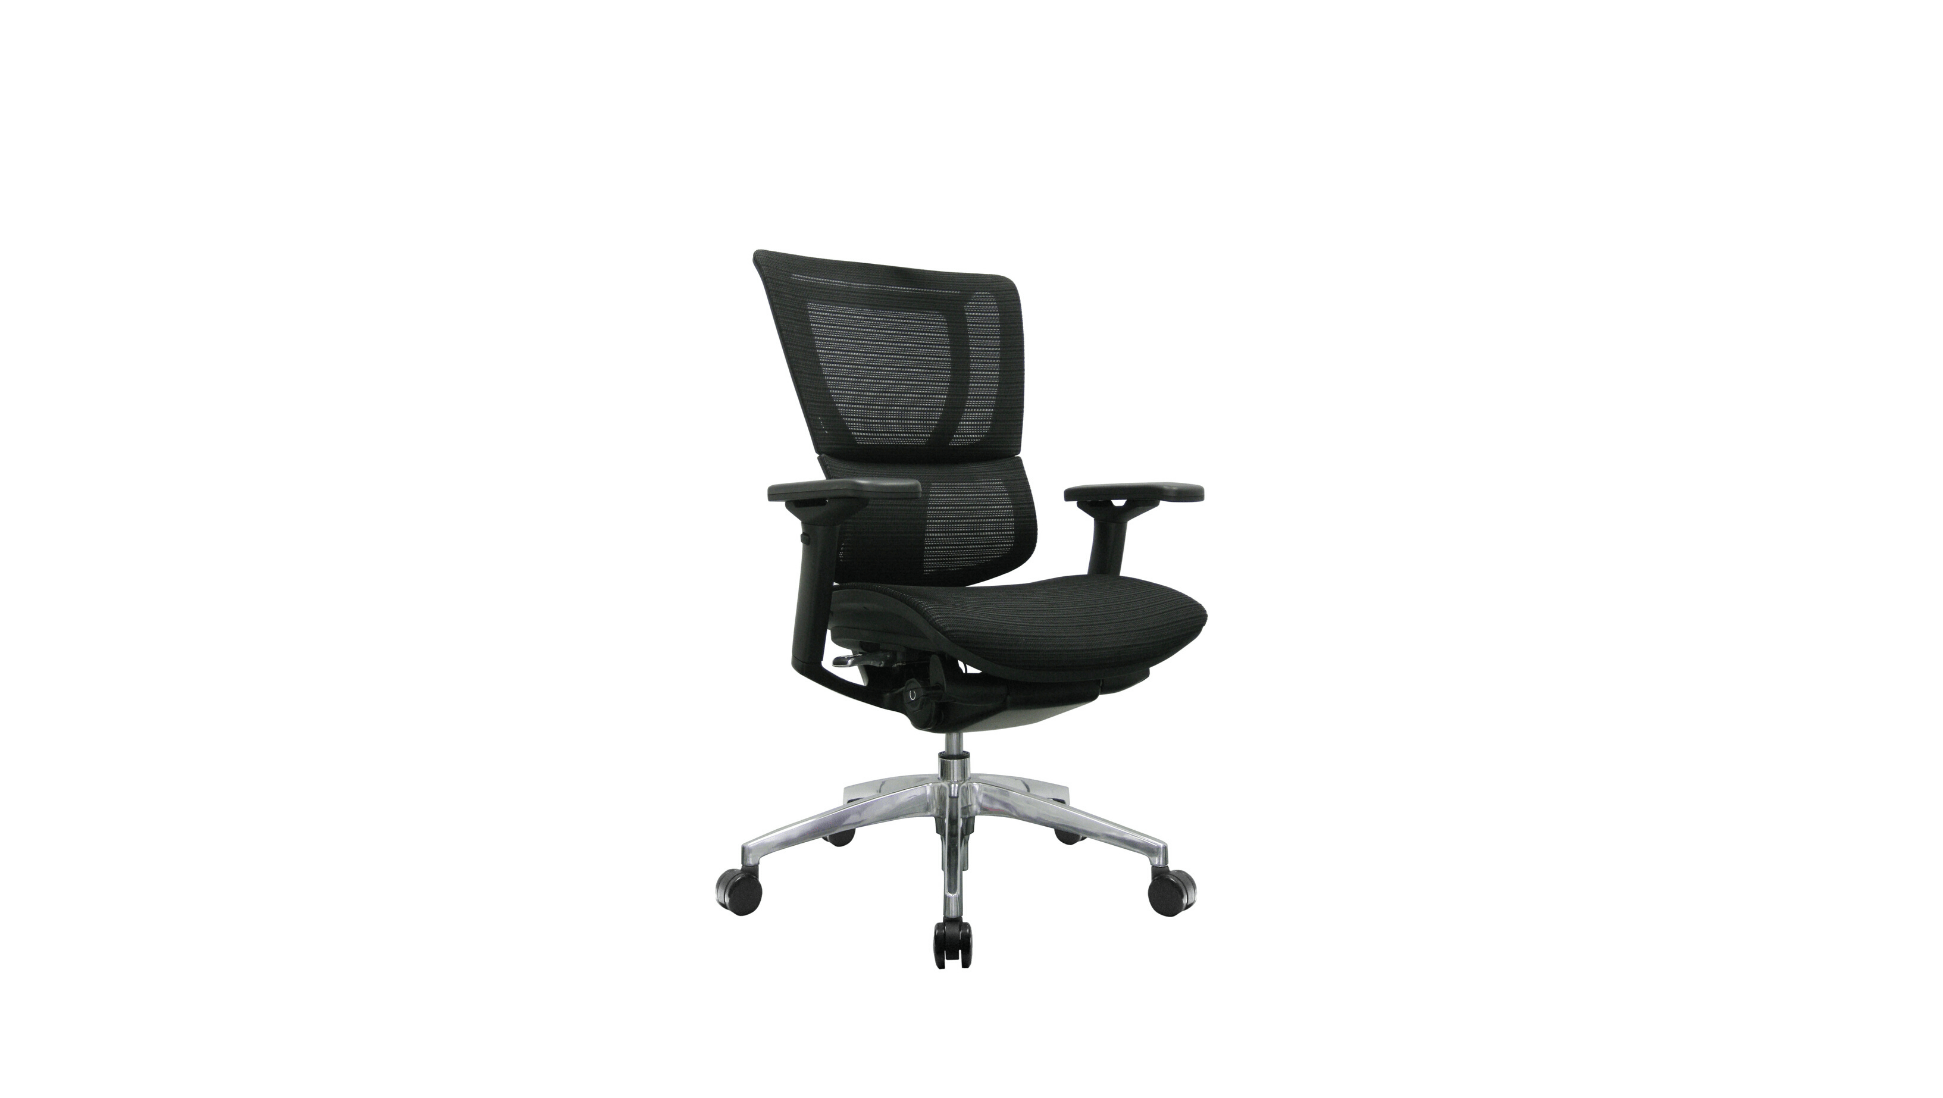 Seating Black Frame / Black Mesh / Without Headrest iOO Chair